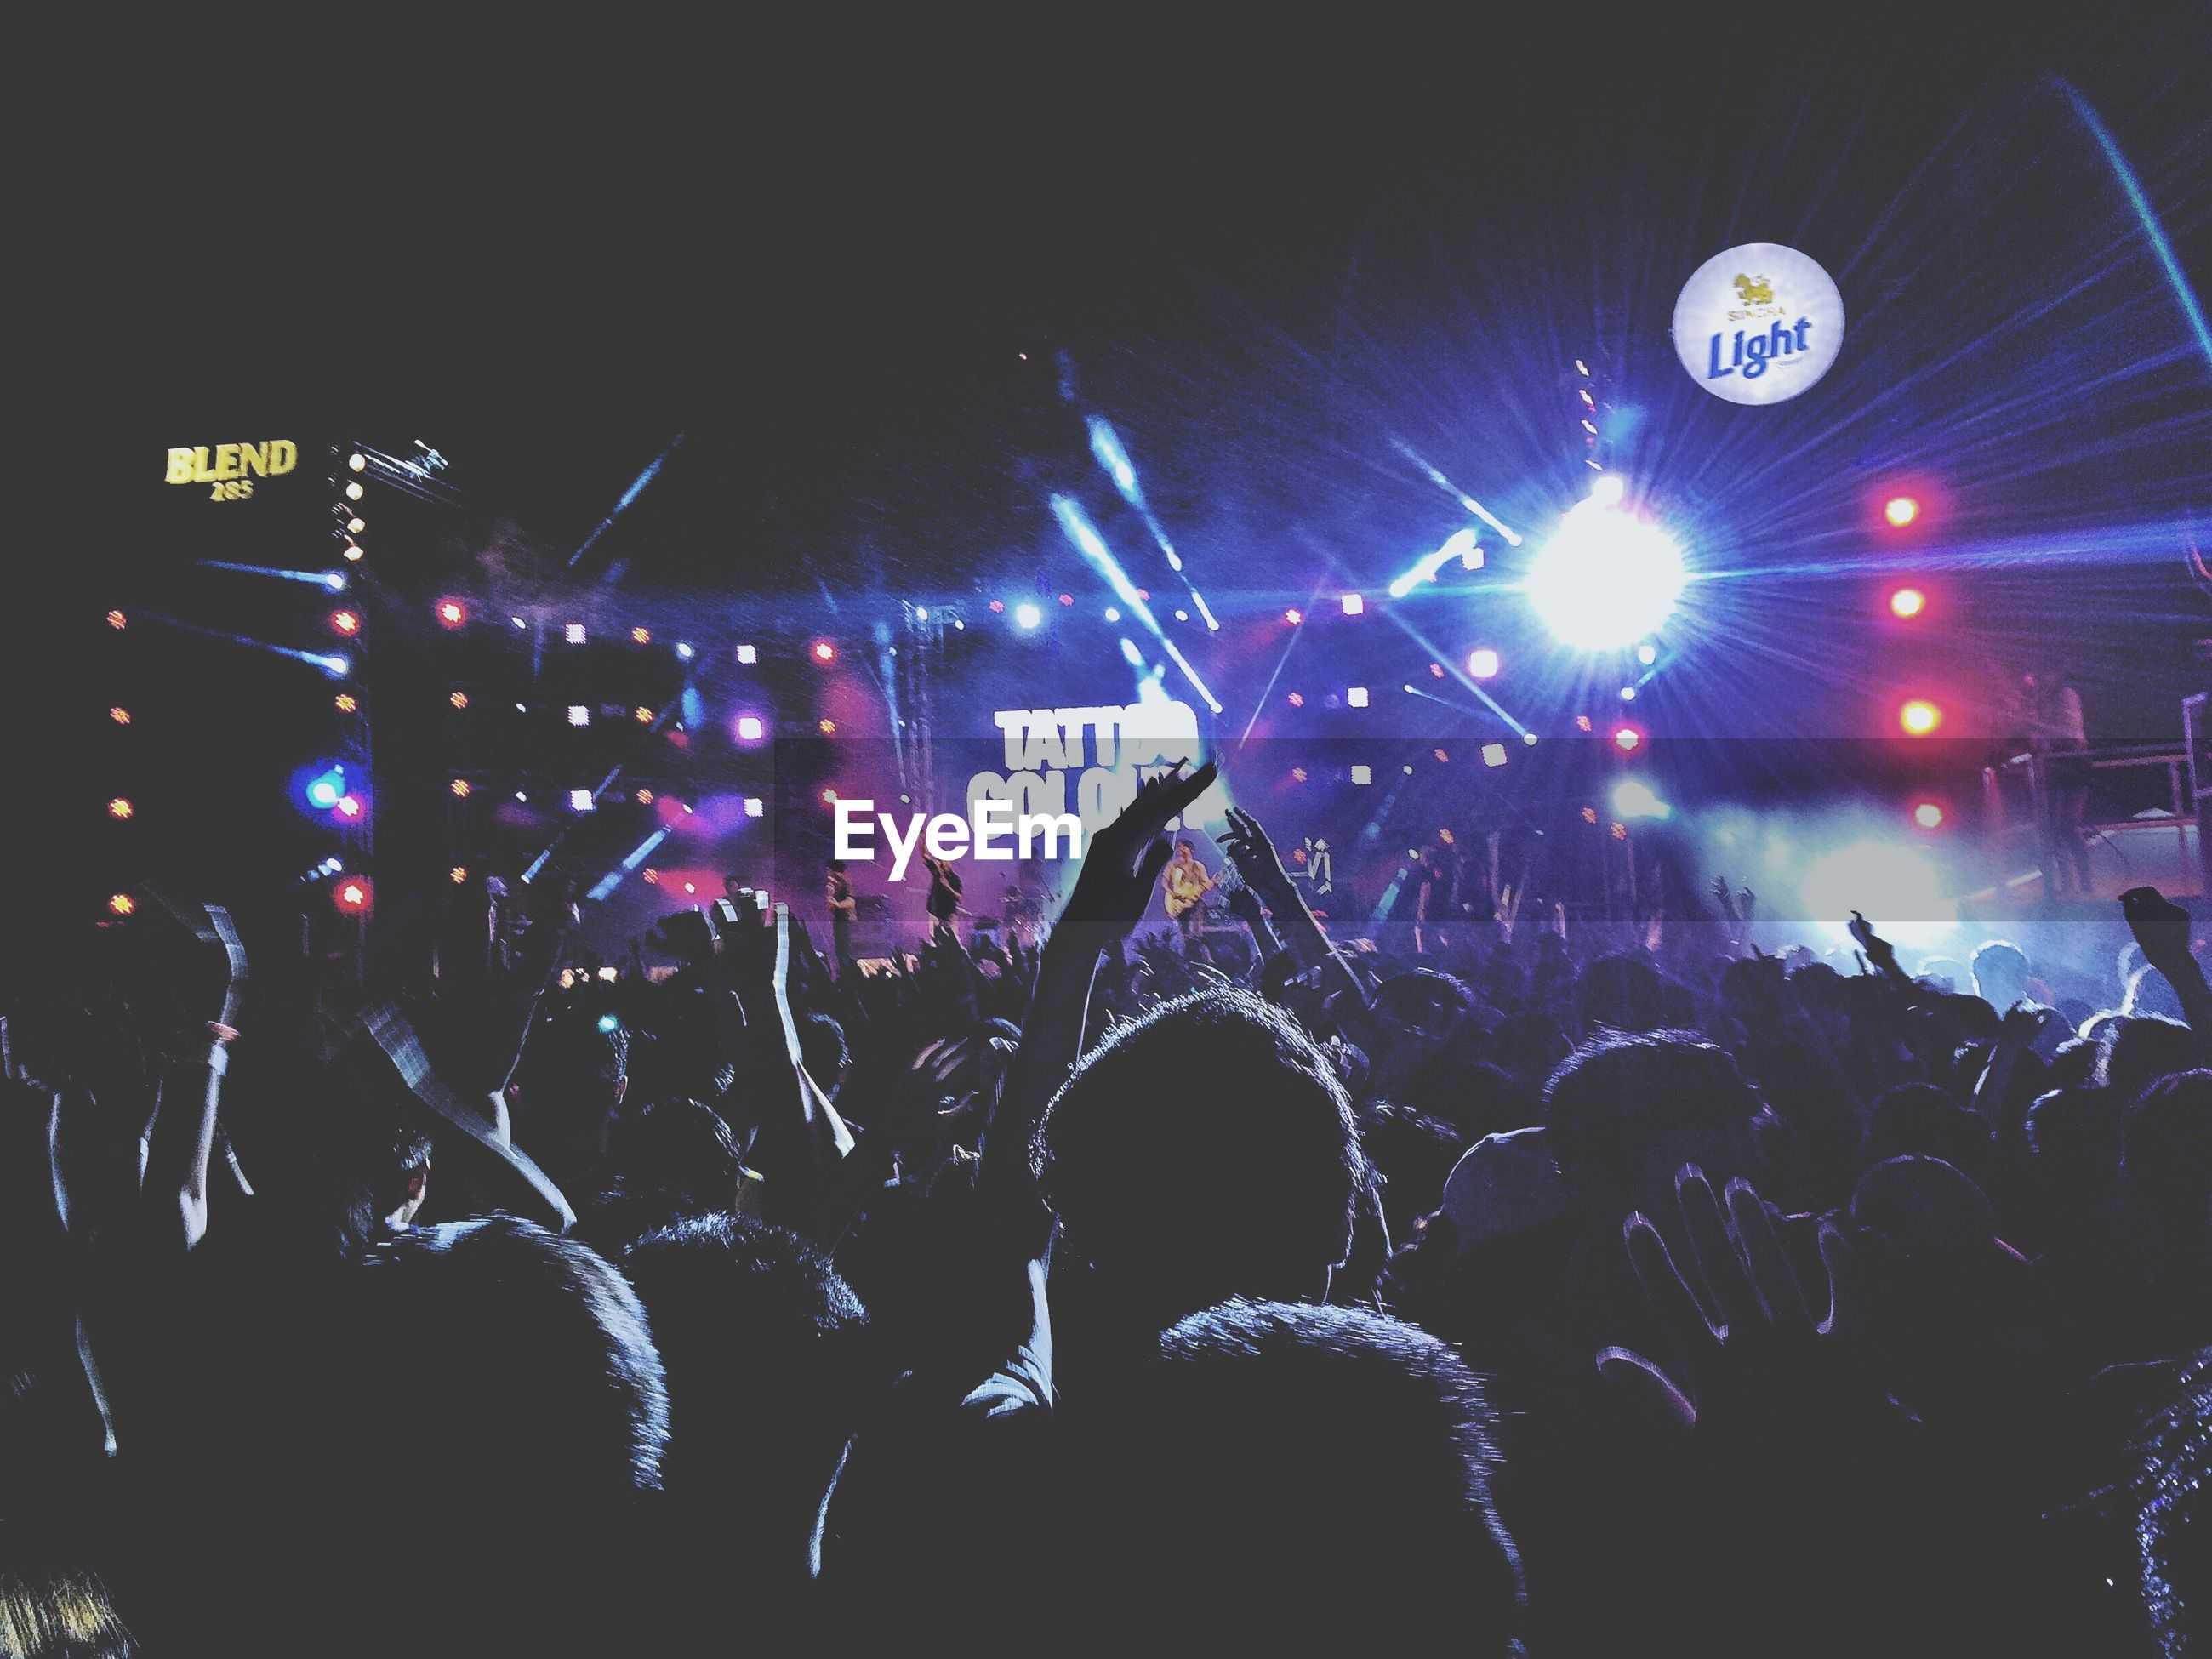 illuminated, night, large group of people, crowd, celebration, nightlife, communication, text, arts culture and entertainment, lighting equipment, performance, men, music, event, leisure activity, western script, lifestyles, person, youth culture